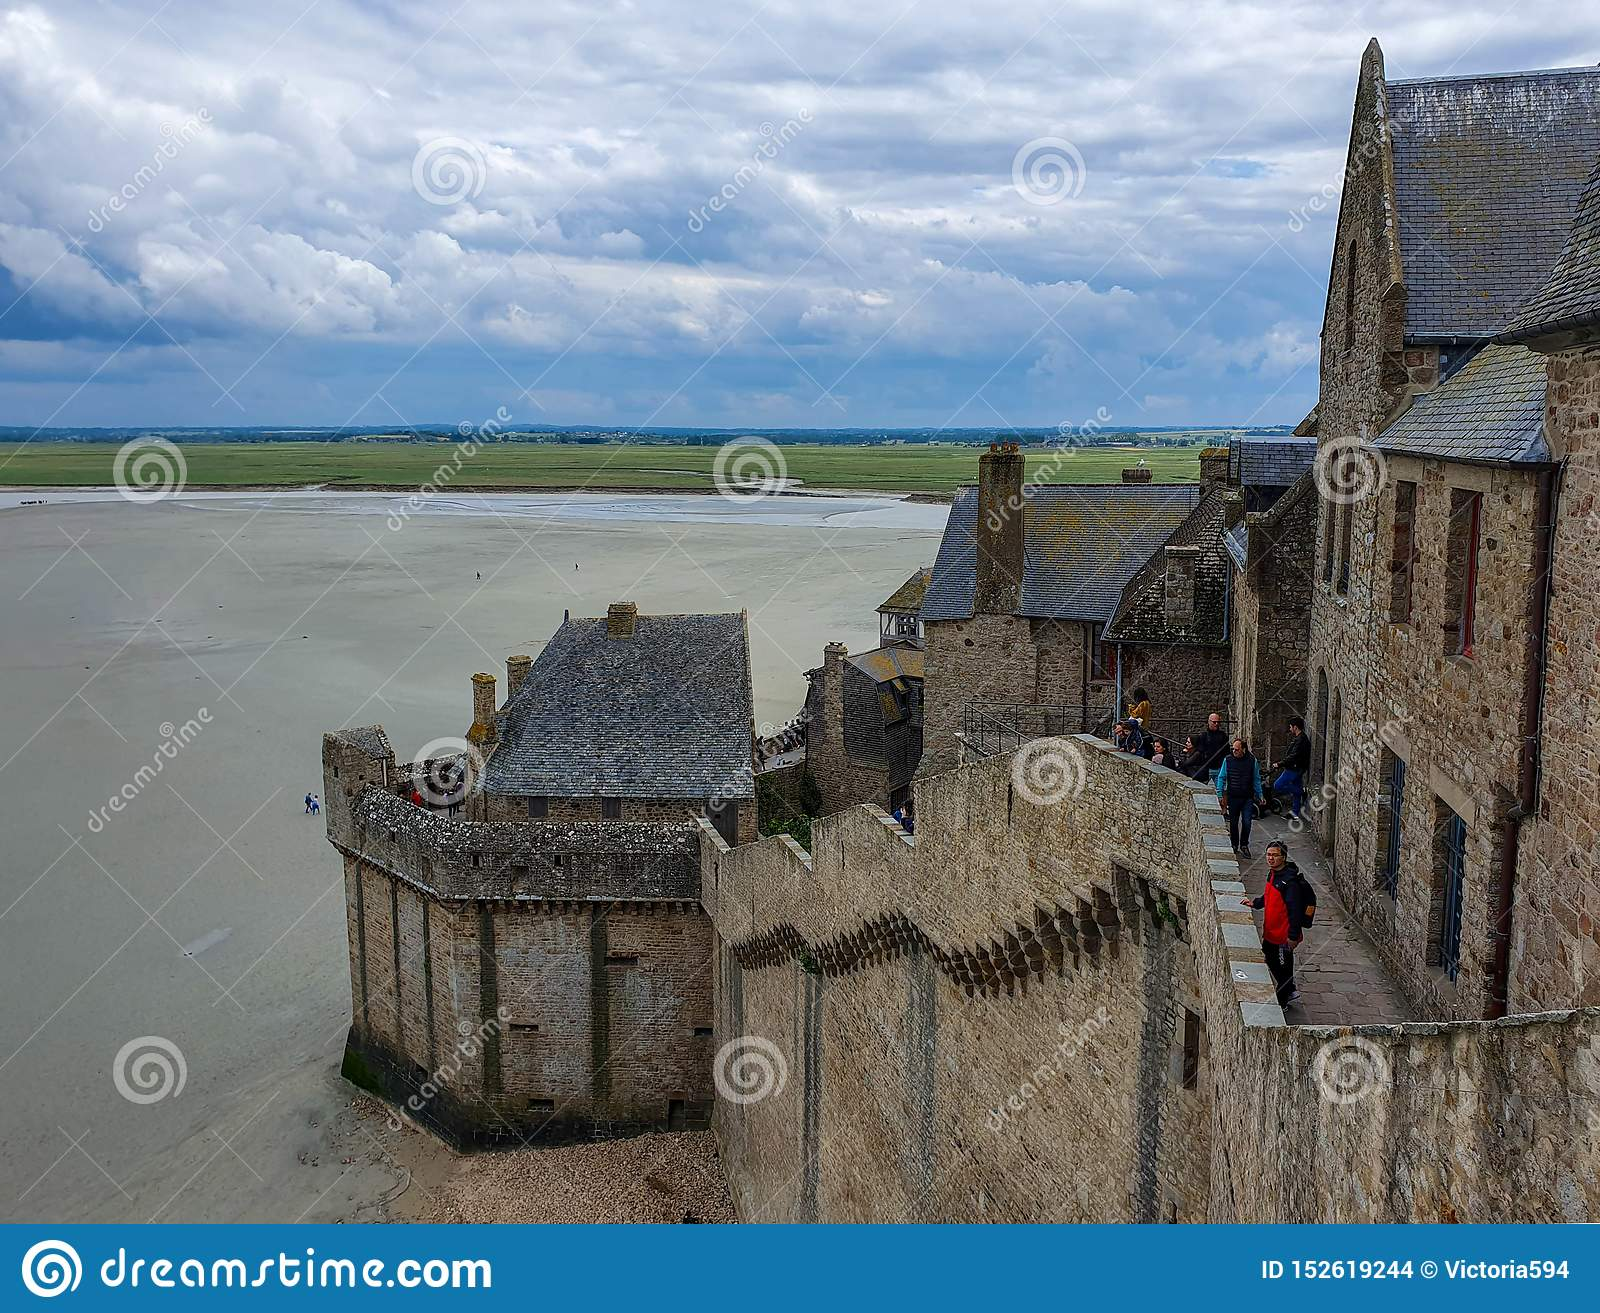 Mont Saint-Michel, Normandy, northern France. Summer 2019